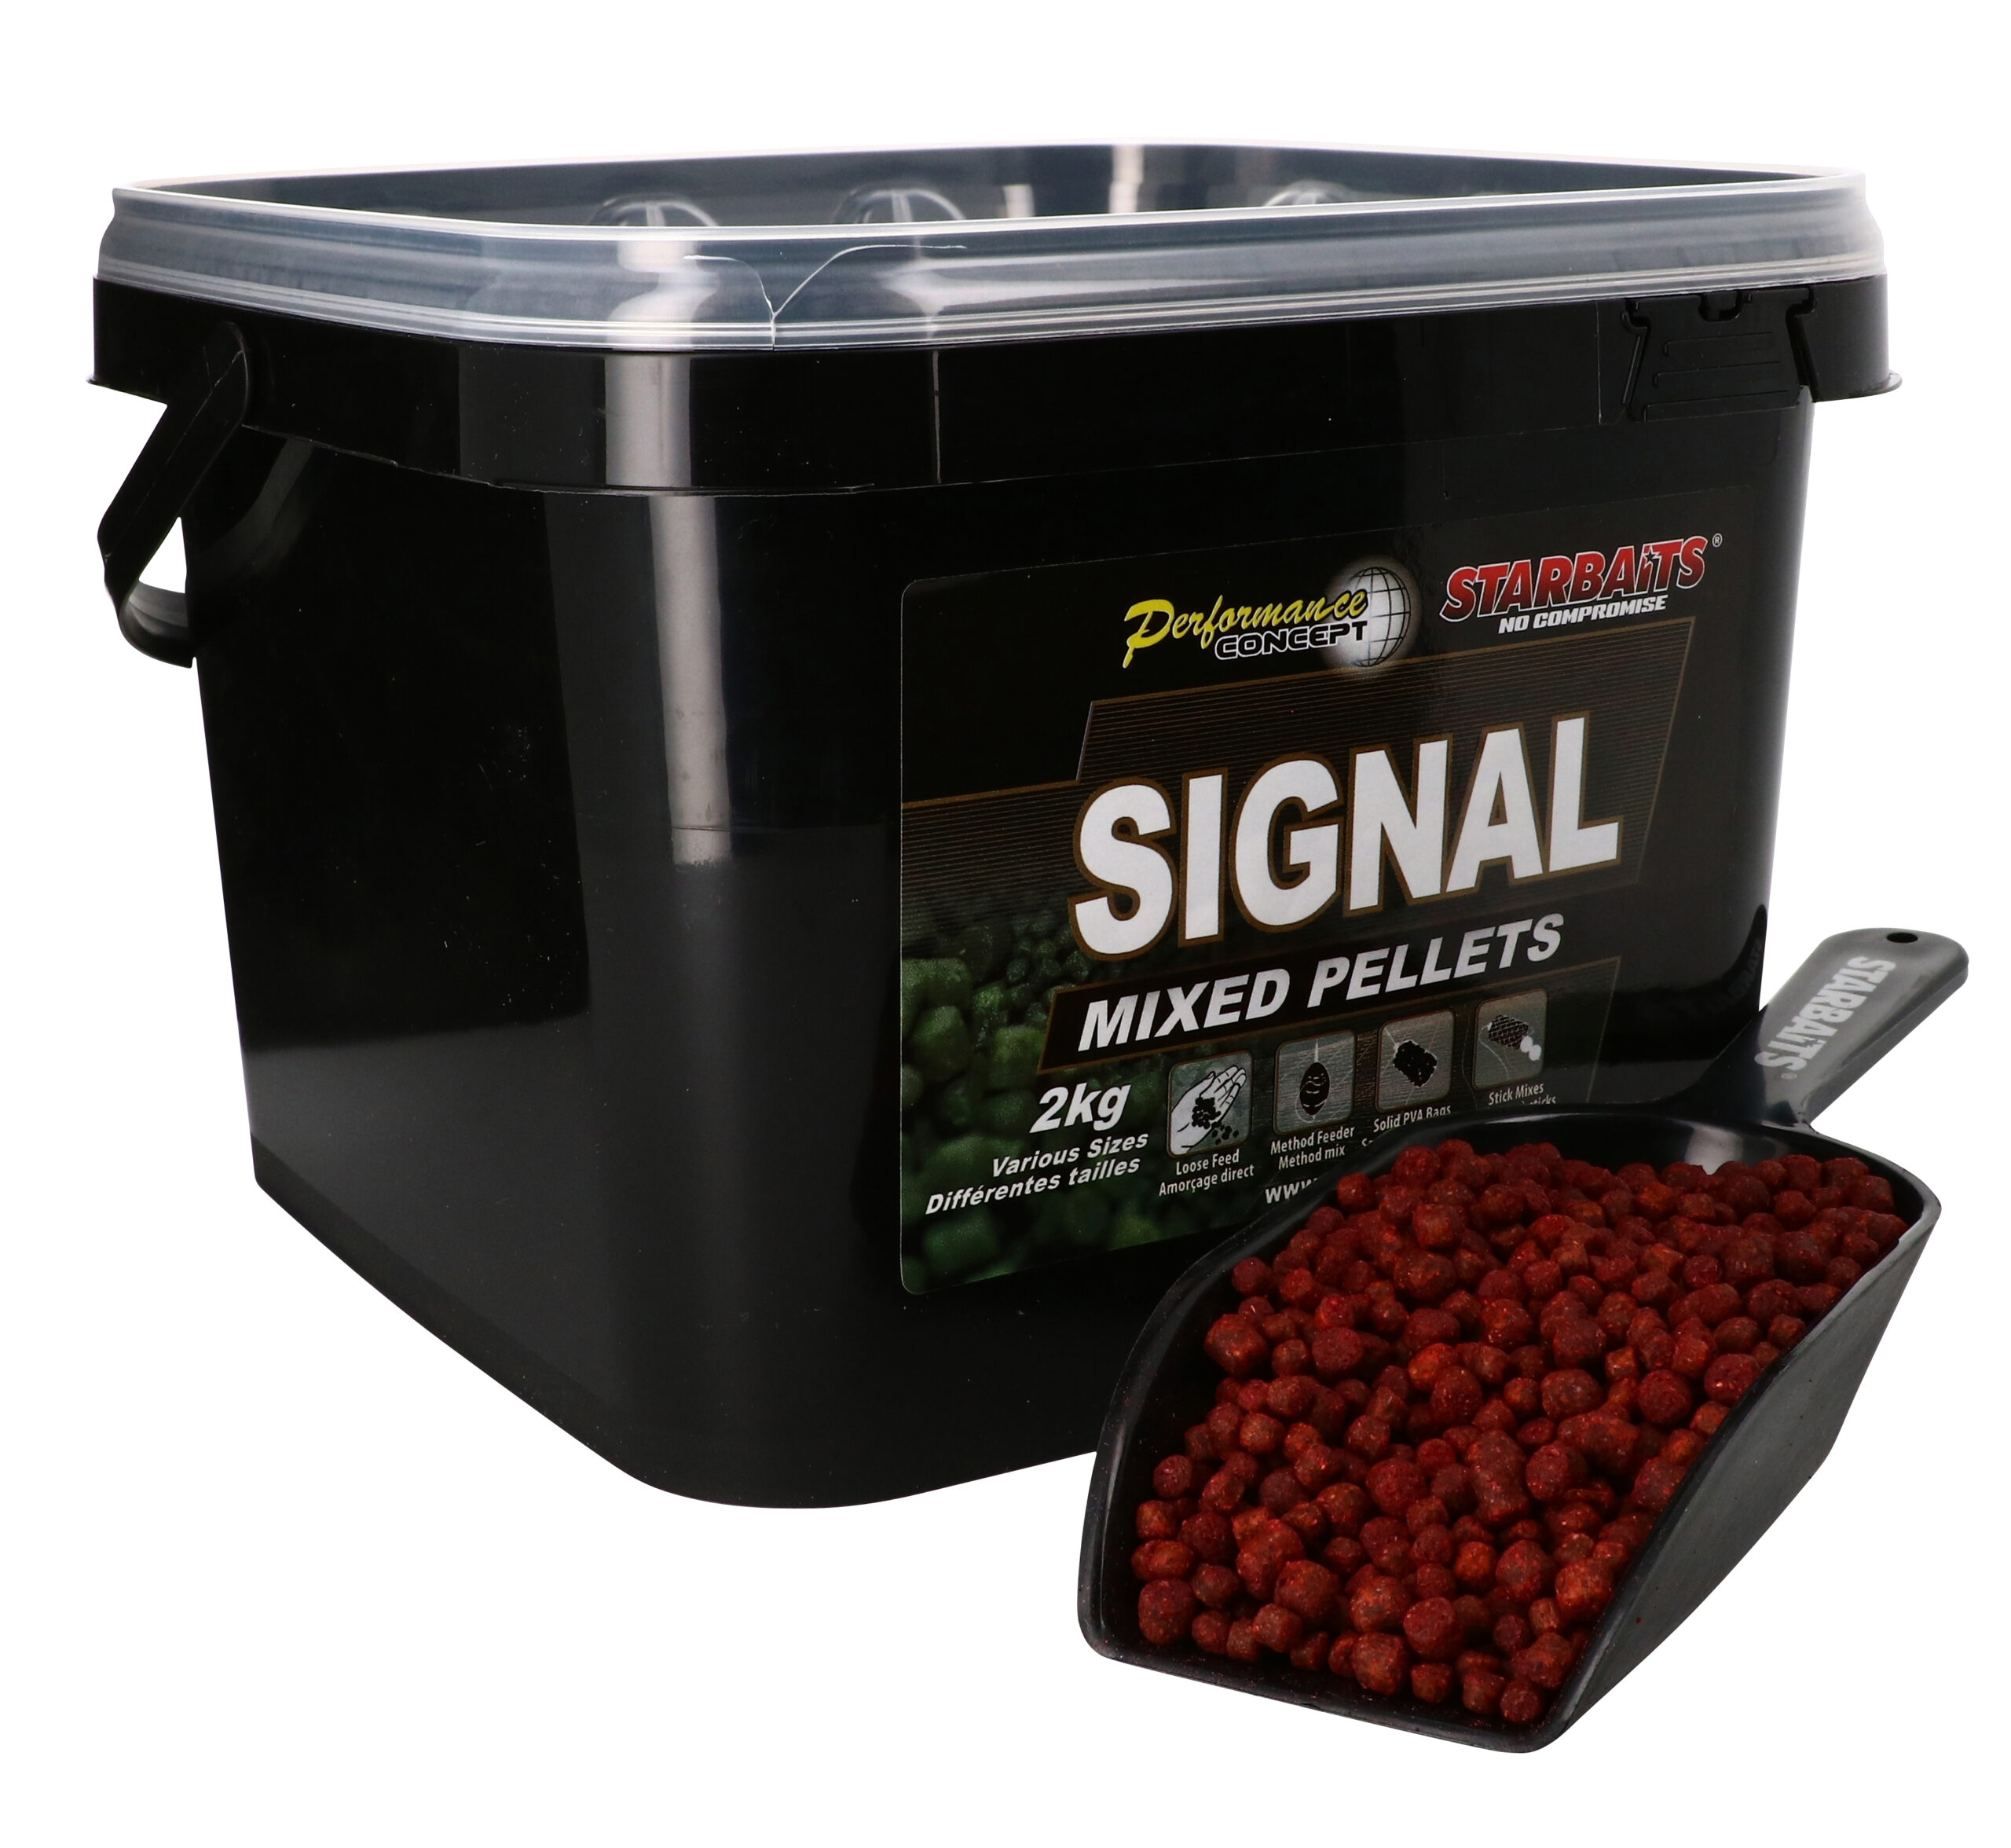 Starbaits Performance Concept Signal Mixed Pellets 2 Kg